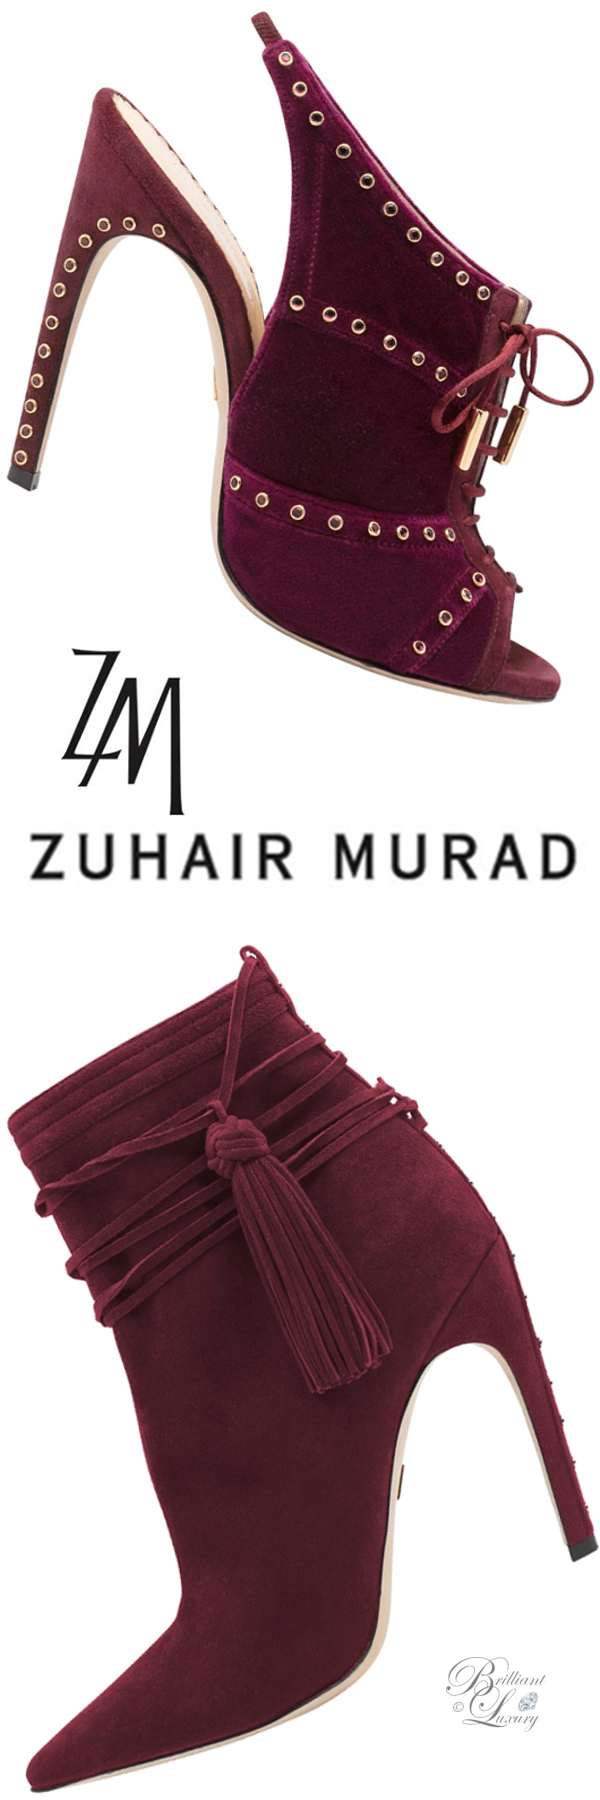 Zuhair Murad slingback peeptoe mules and tassel booties in burgundy